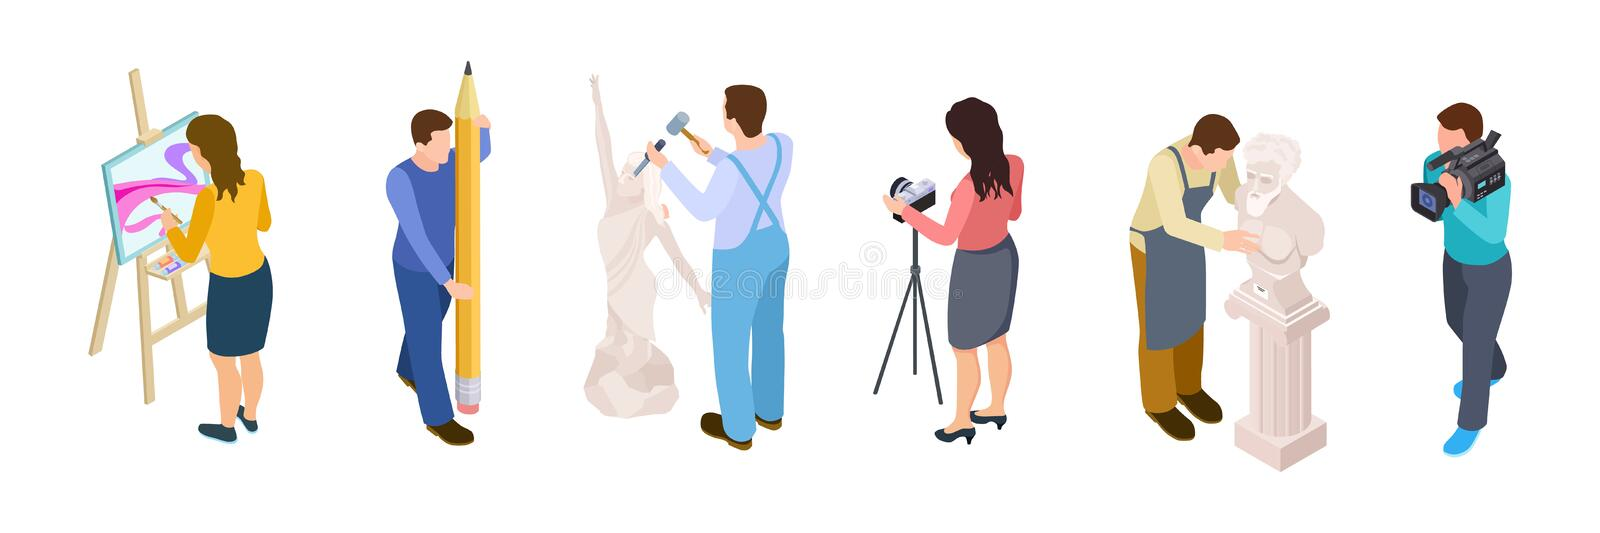 Isometric creative people vector. Artists, designer, videographer, sculptor isolated on white background. Sculptor work, people drawing, art hobby illustration stock illustration